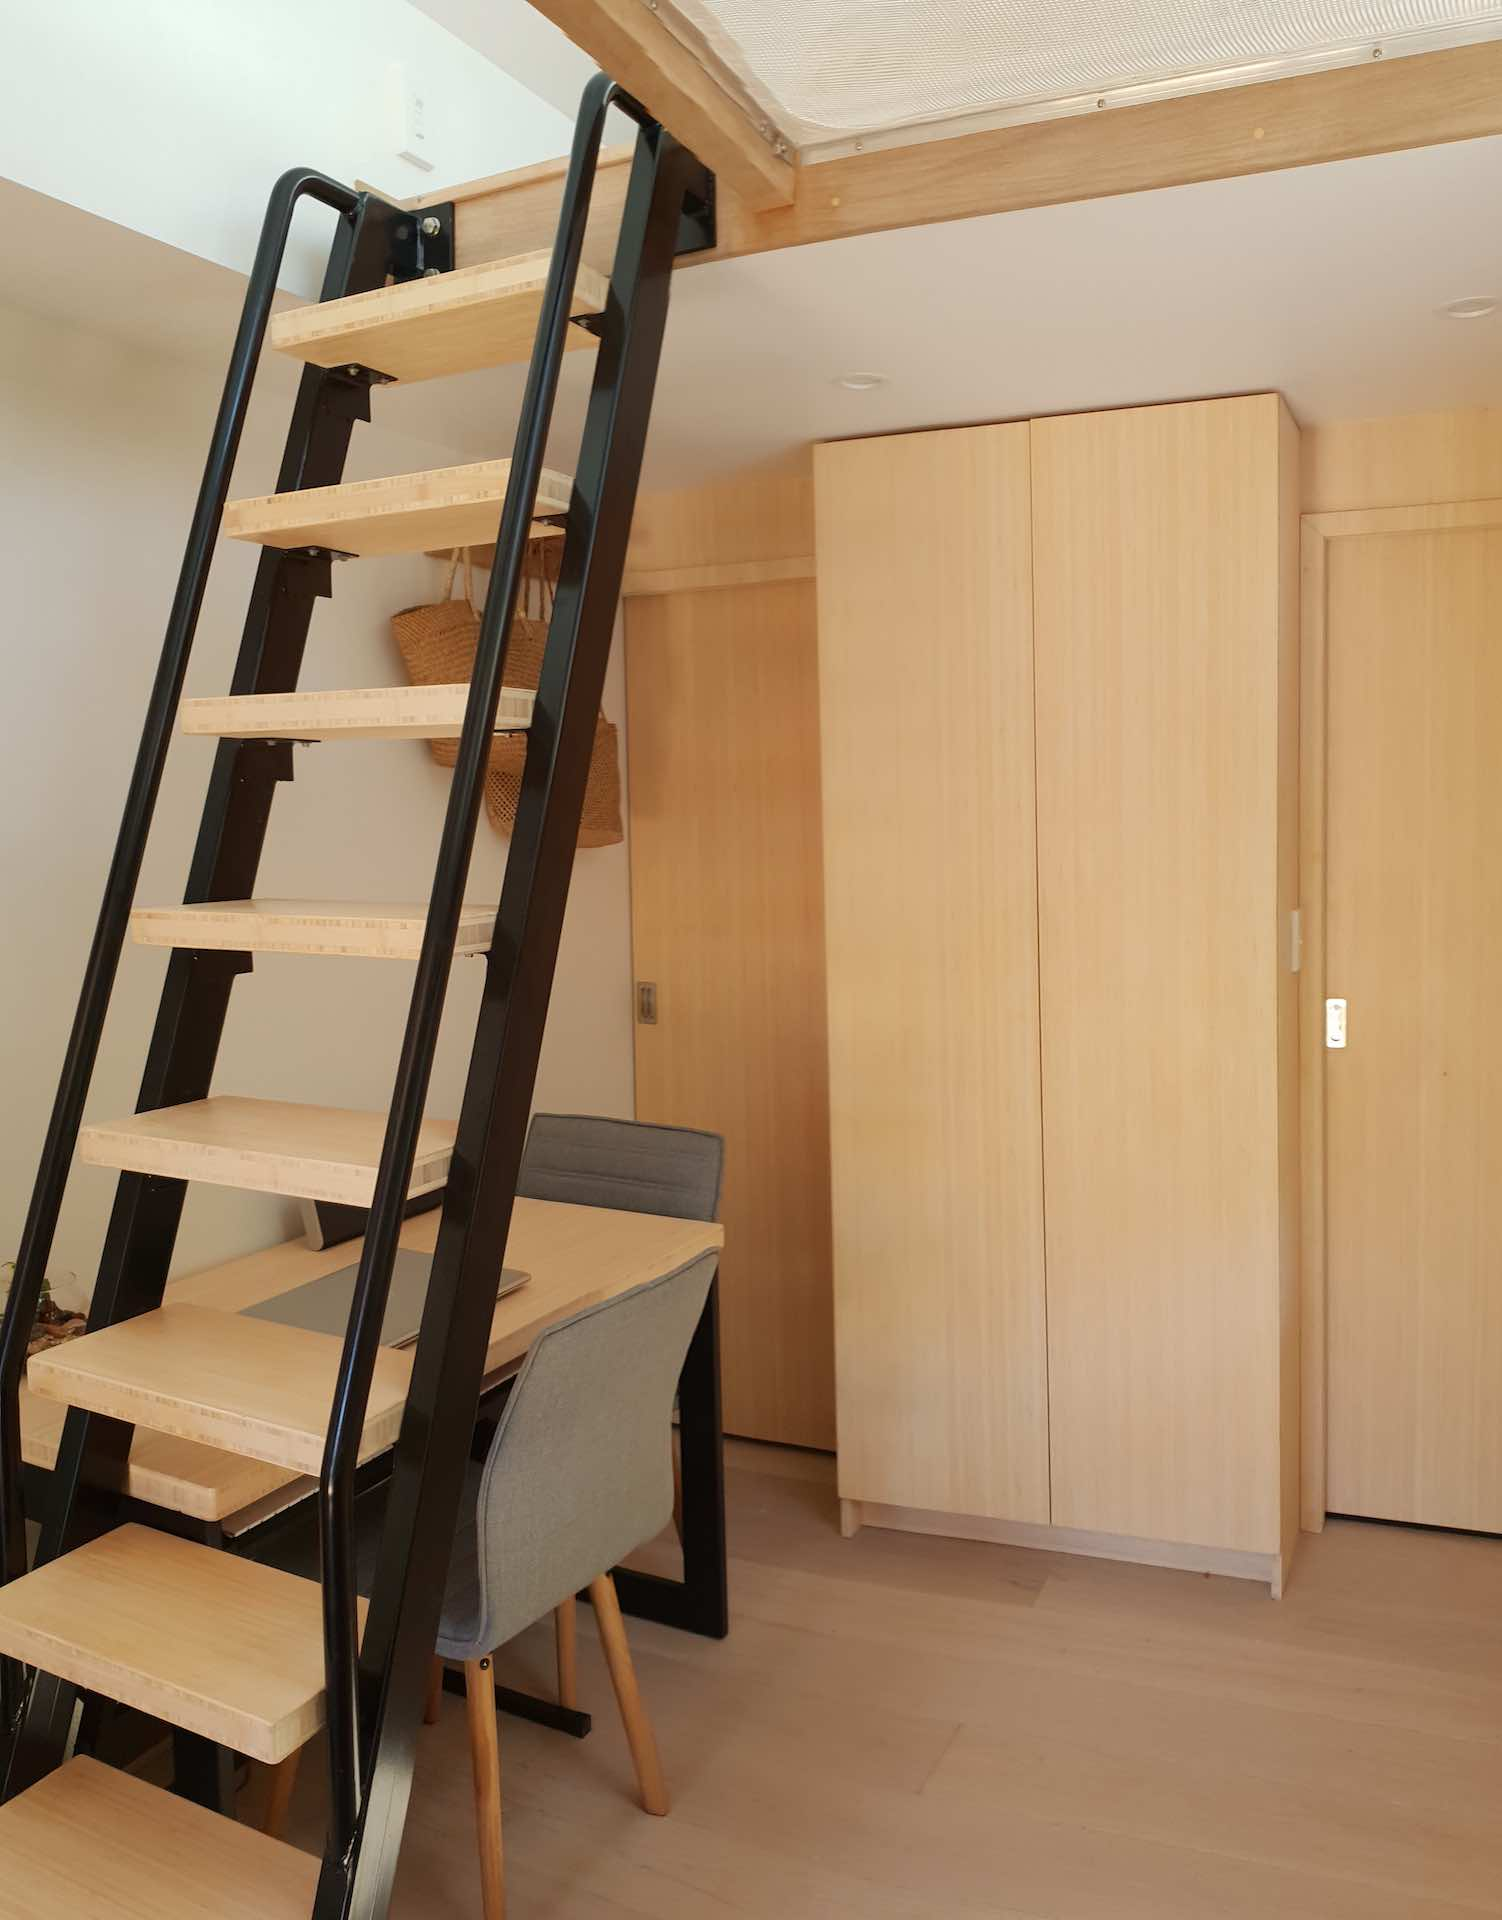 Space saving metal ladder with wooden treads in beautiful Auckland tiny home